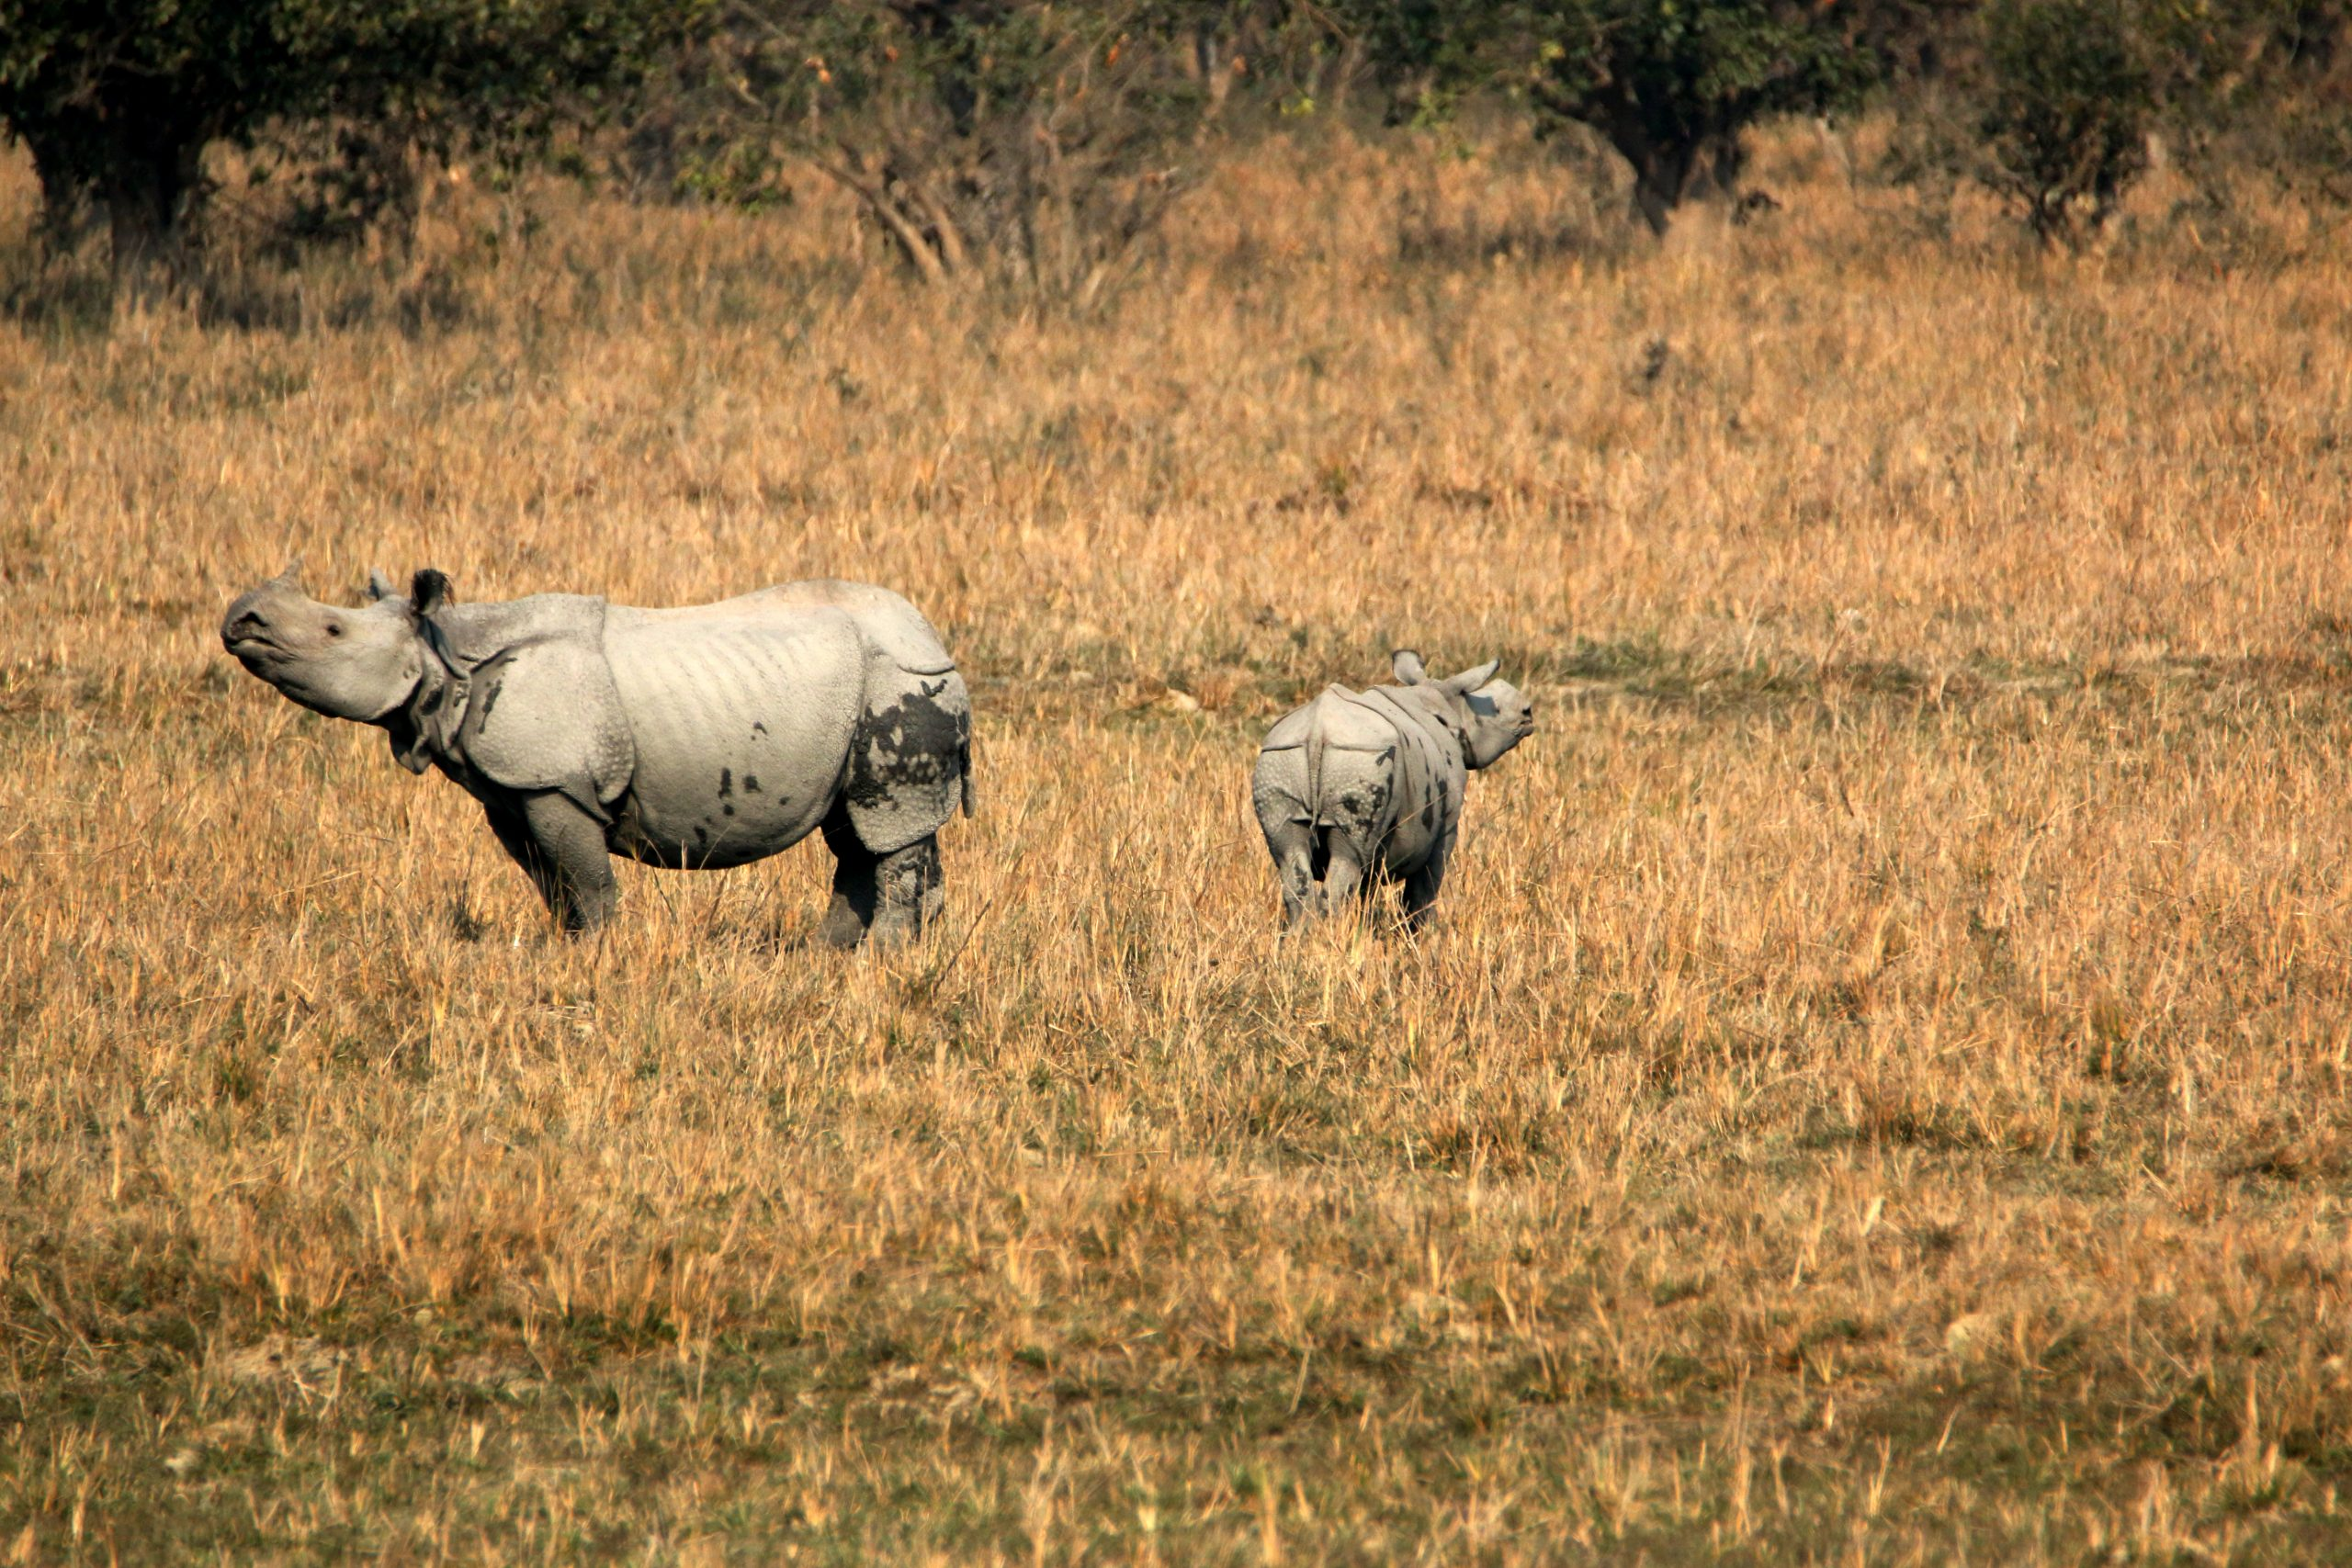 Rhinoceroses in a forest reserve